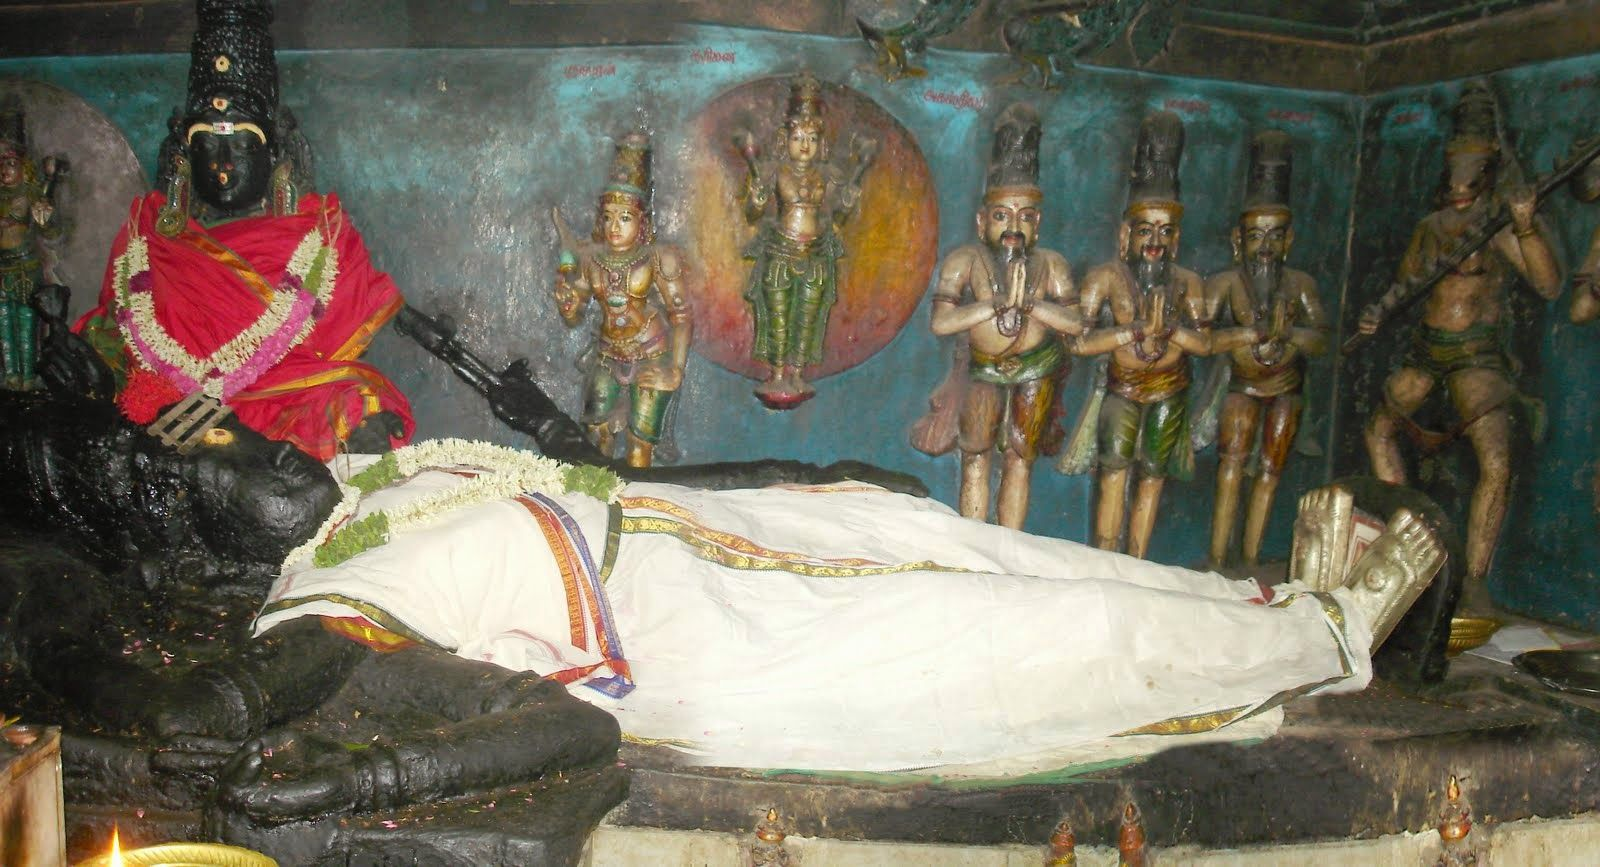 Sri Pallikondeshwara swamy temple at Surutapalli. The Lord Shiva in sleeping position with his head on the lap of the Goddess Parvati, surrounded by the Lord Brahma, Lord Vishnu, Mukoti Devas Maharishis and Sages creates an atmosphere of Kailash (Heaven). It is only temple where Lord Shiva is seen in the human form.